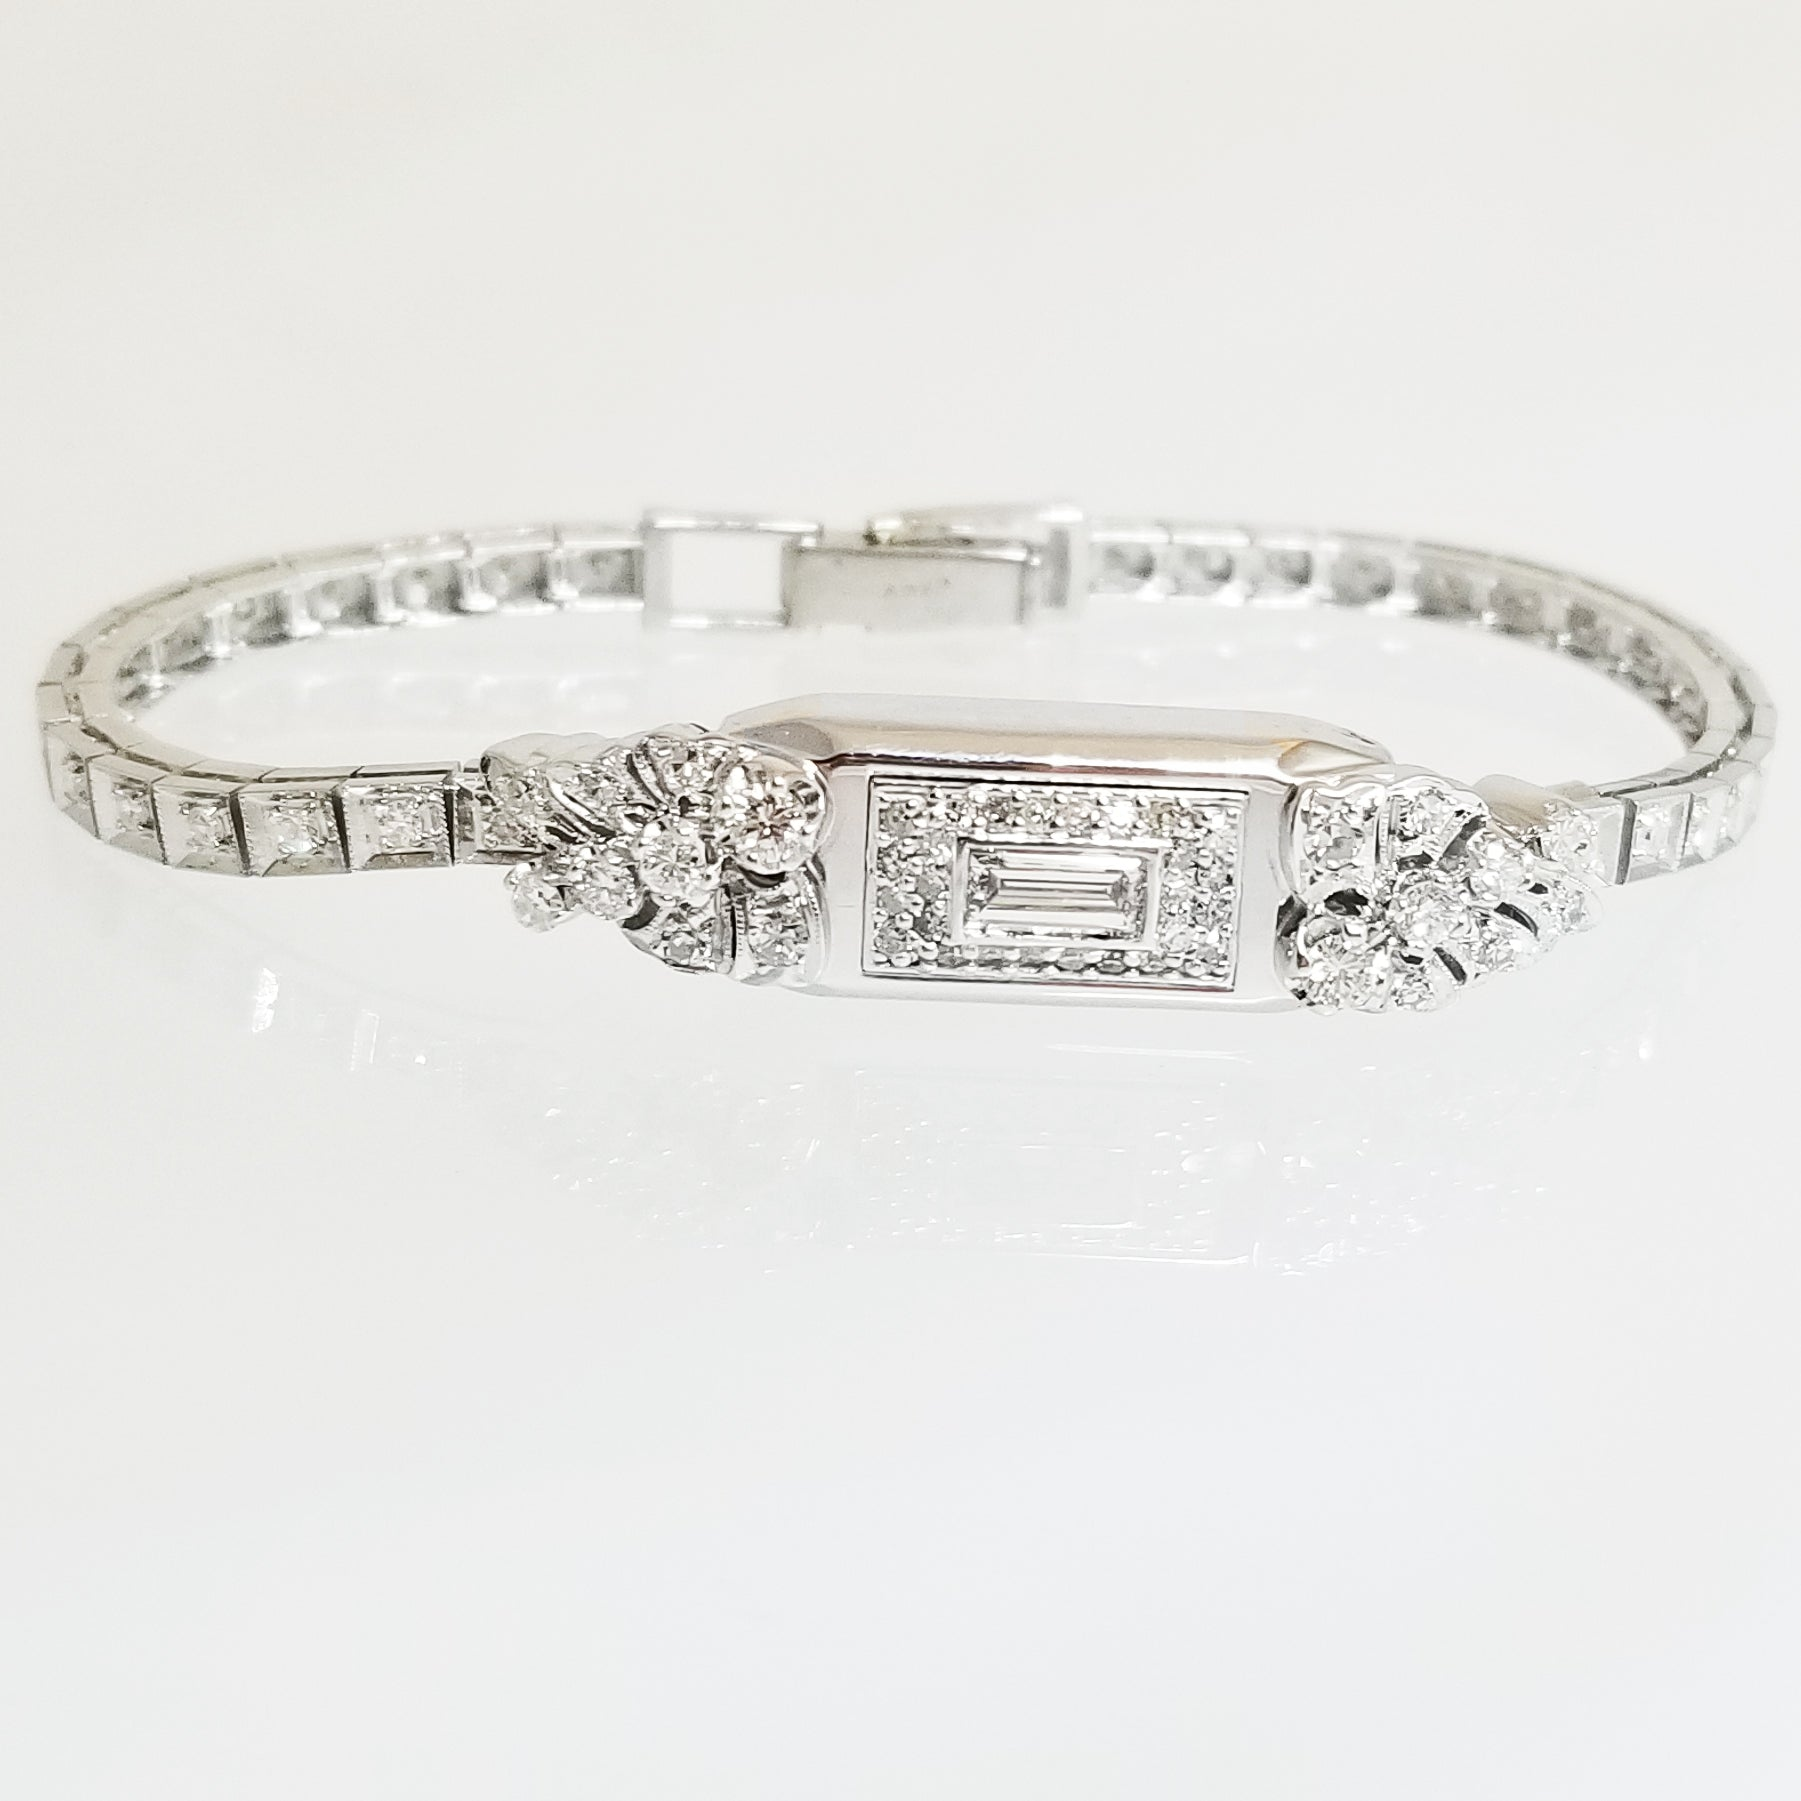 Ready to ship diamond antique watch bracelet in 14k white gold